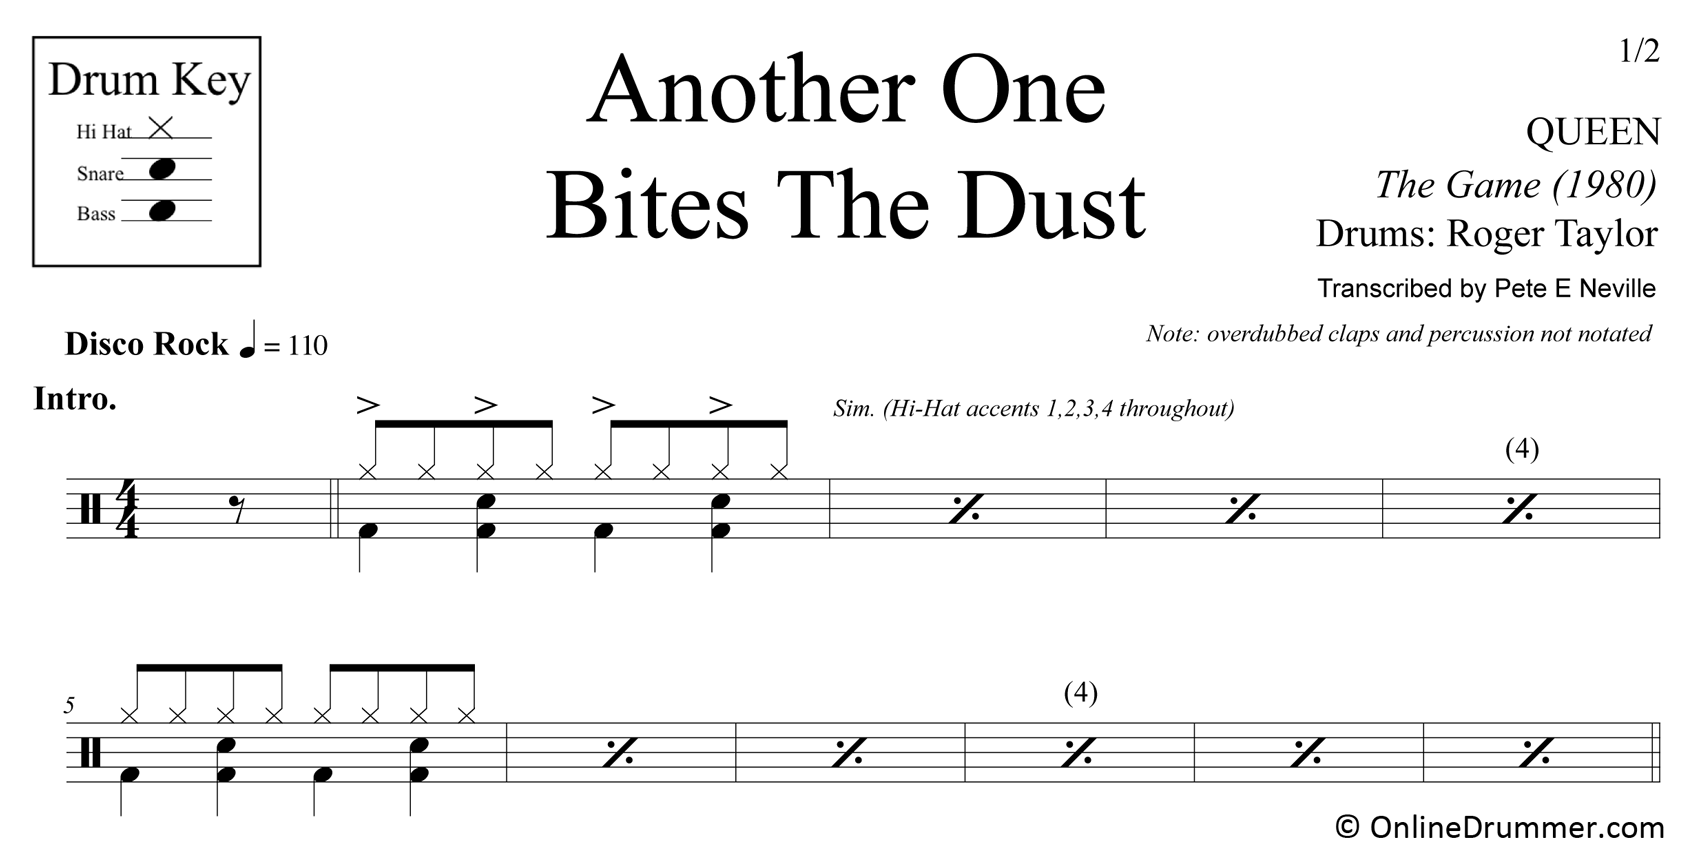 Another One Bites The Dust - Queen - Drum Sheet Music